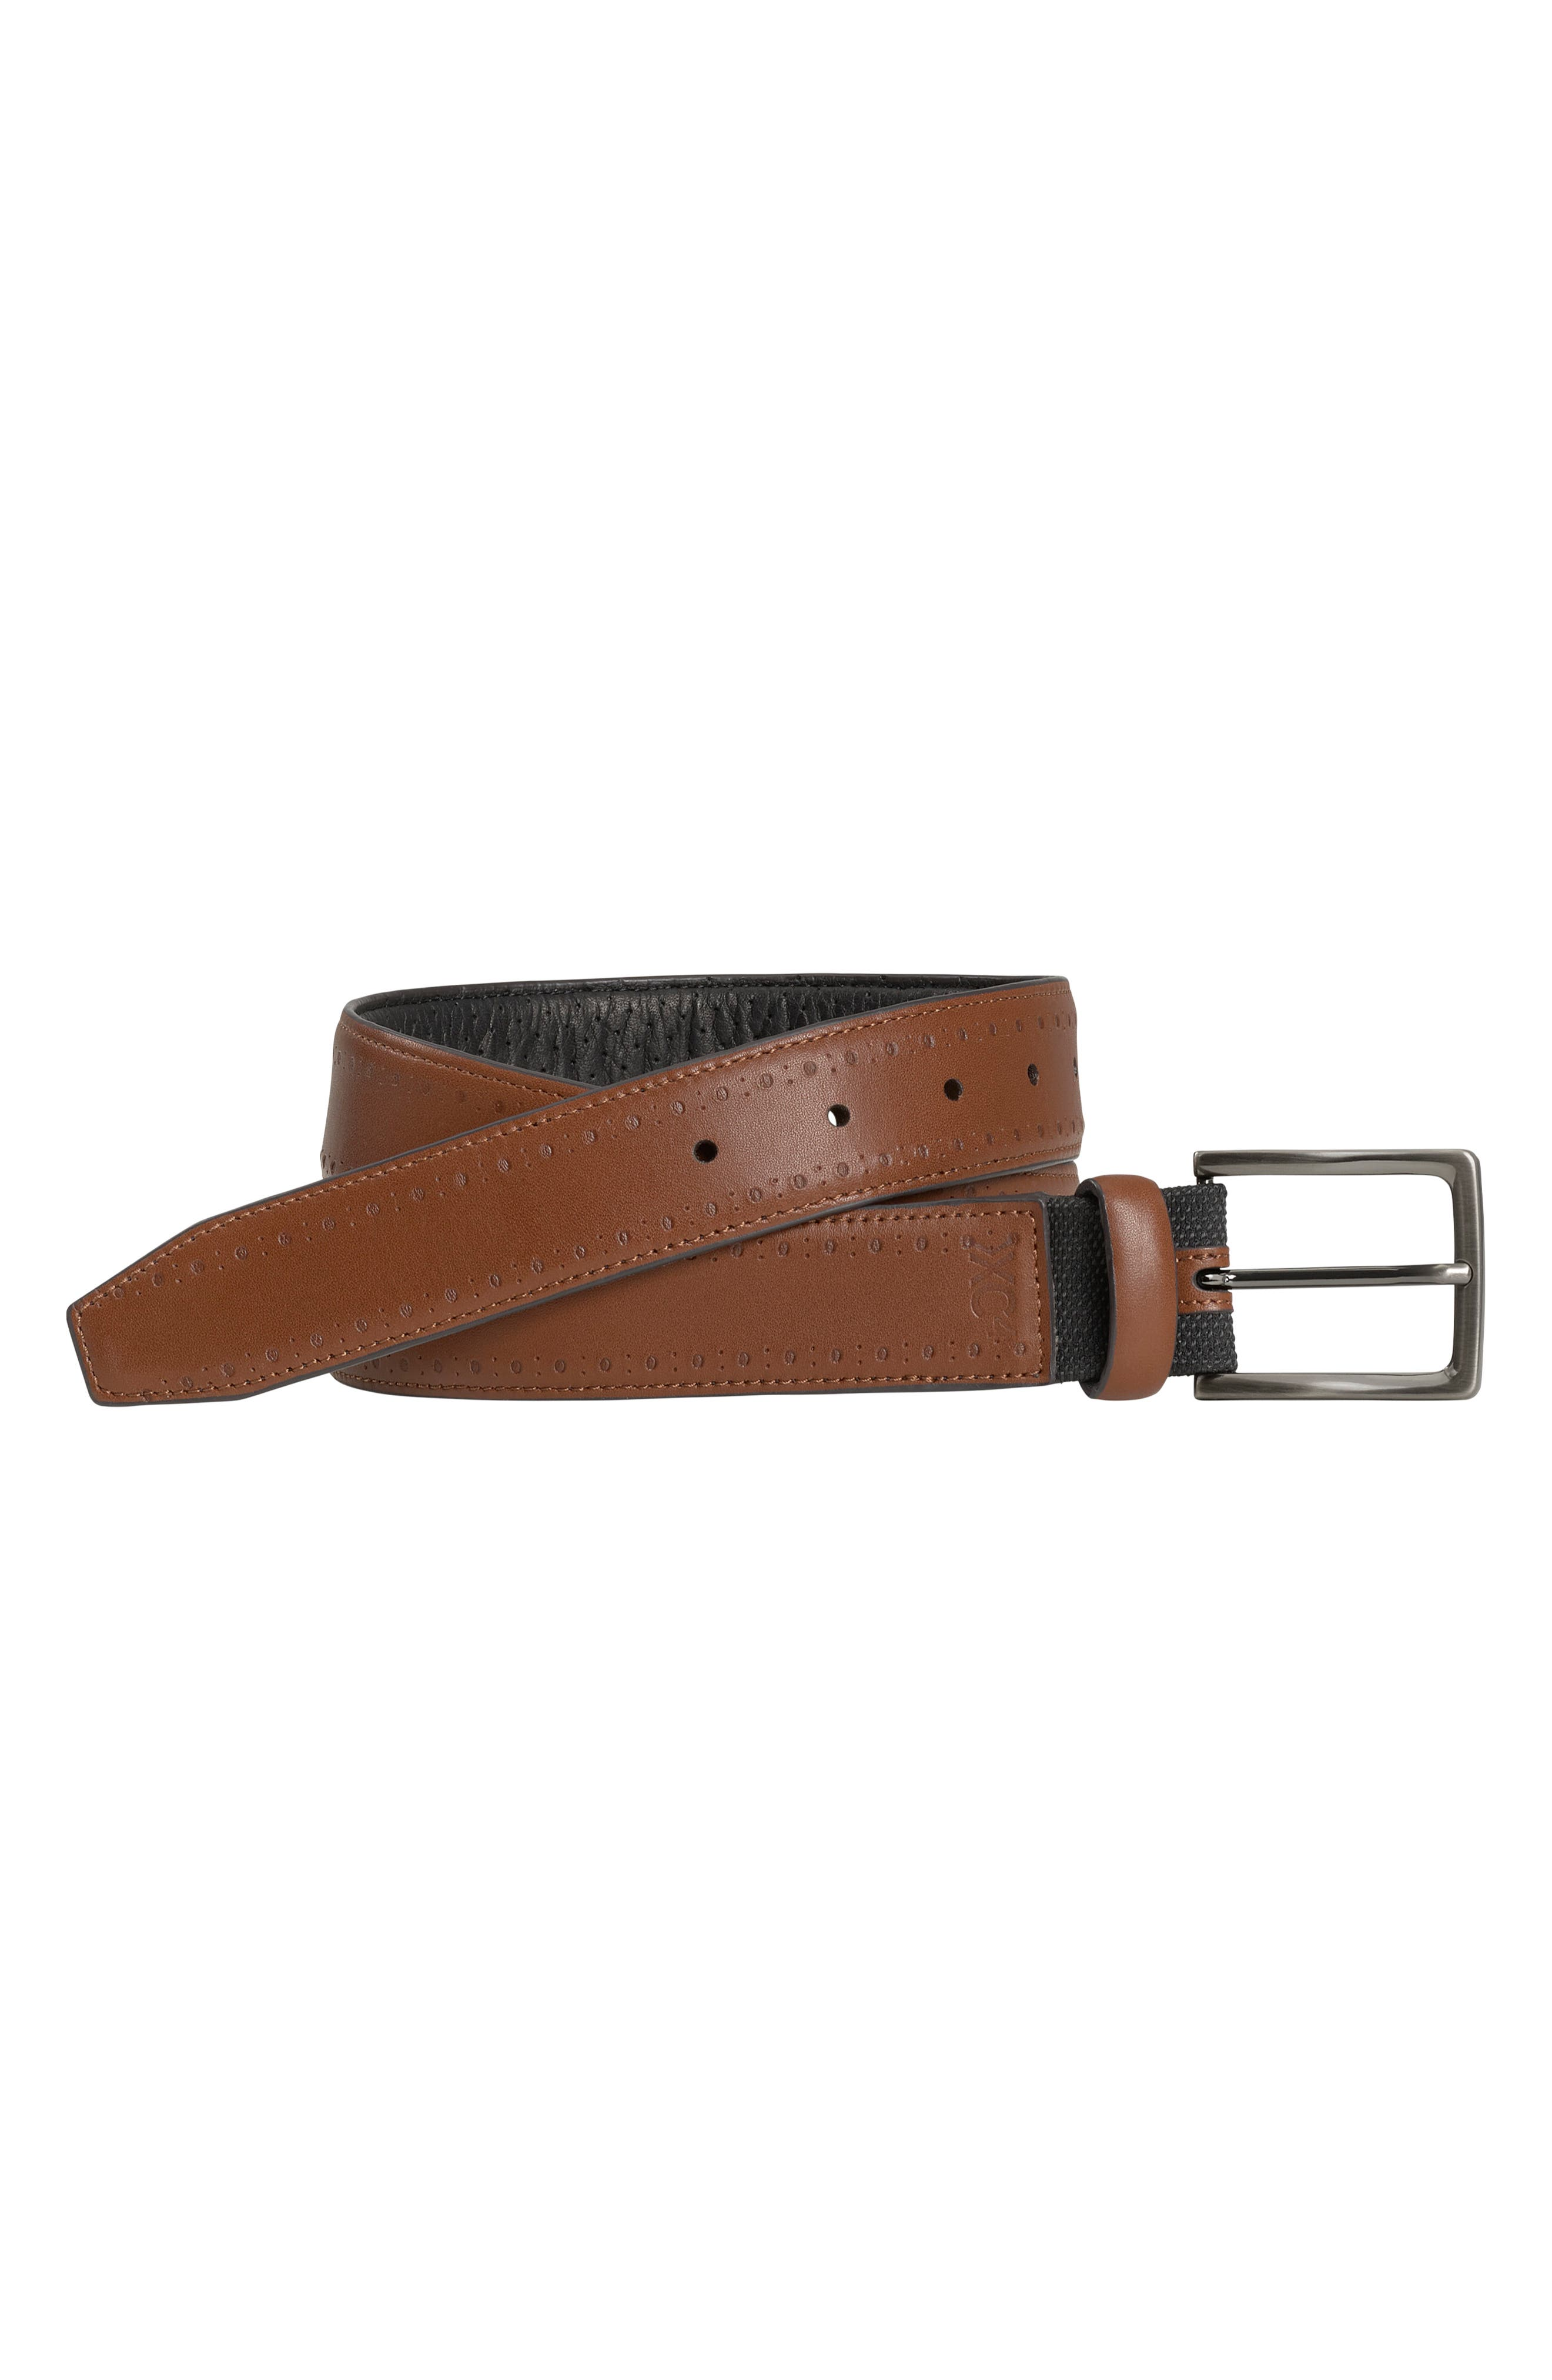 Xc4 Perforated Leather Belt